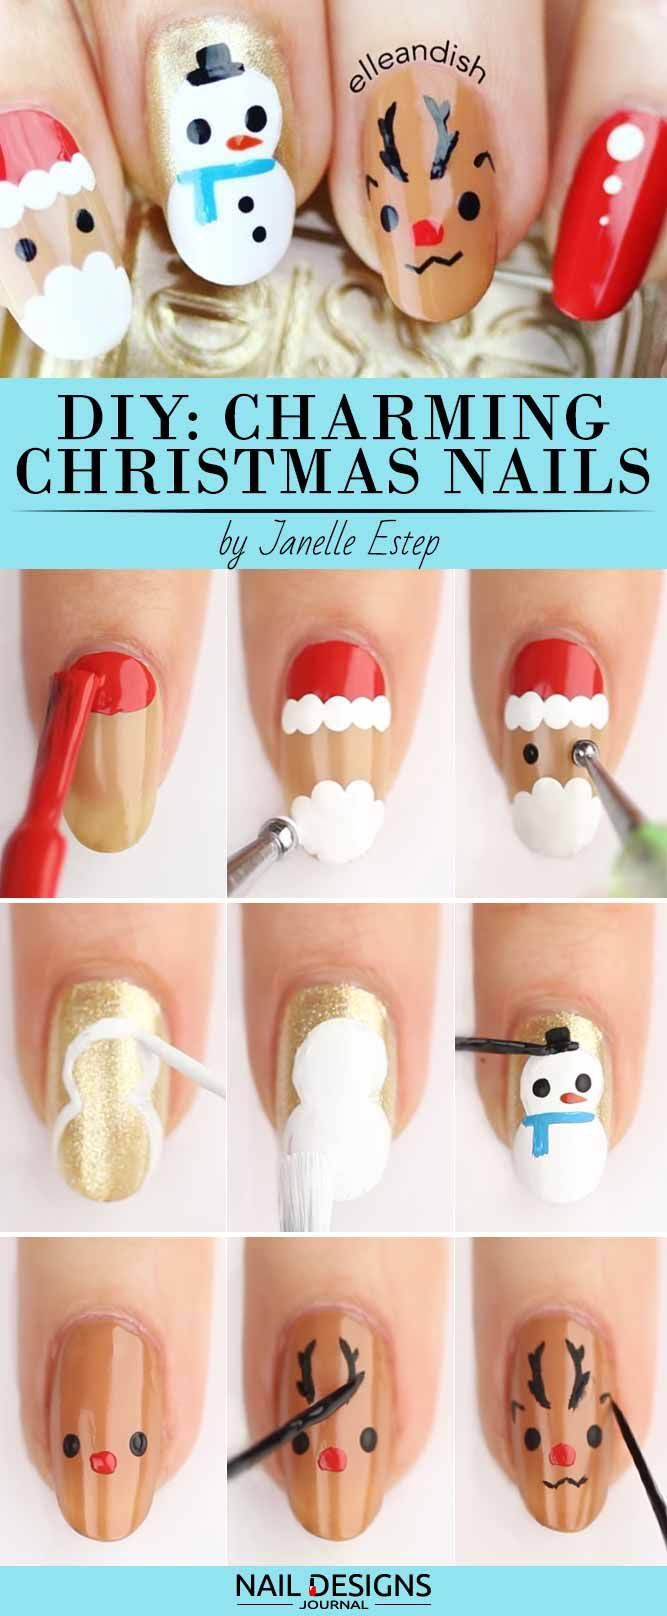 10 Charming Christmas Nail Art Ideas Youll Adore Tutorial Nails